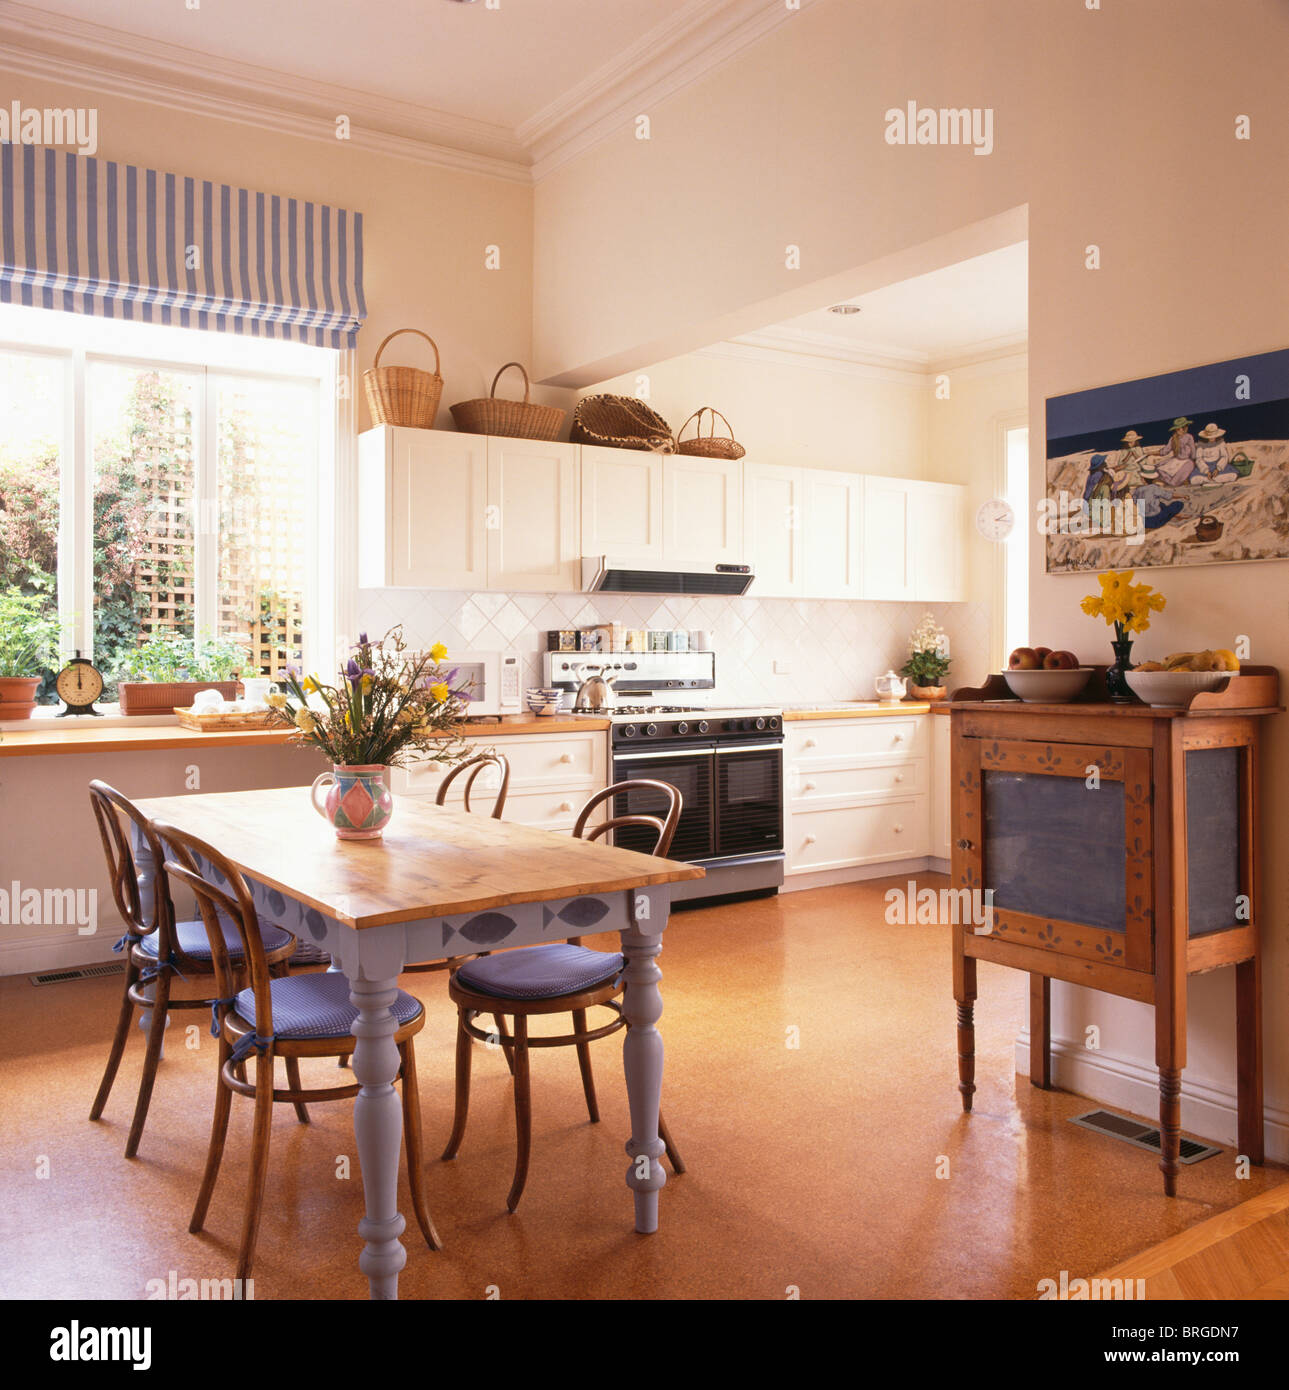 Cork Floor In Kitchen Cork Flooring In Modern Kitchen Dining Room With Bentwood Chairs